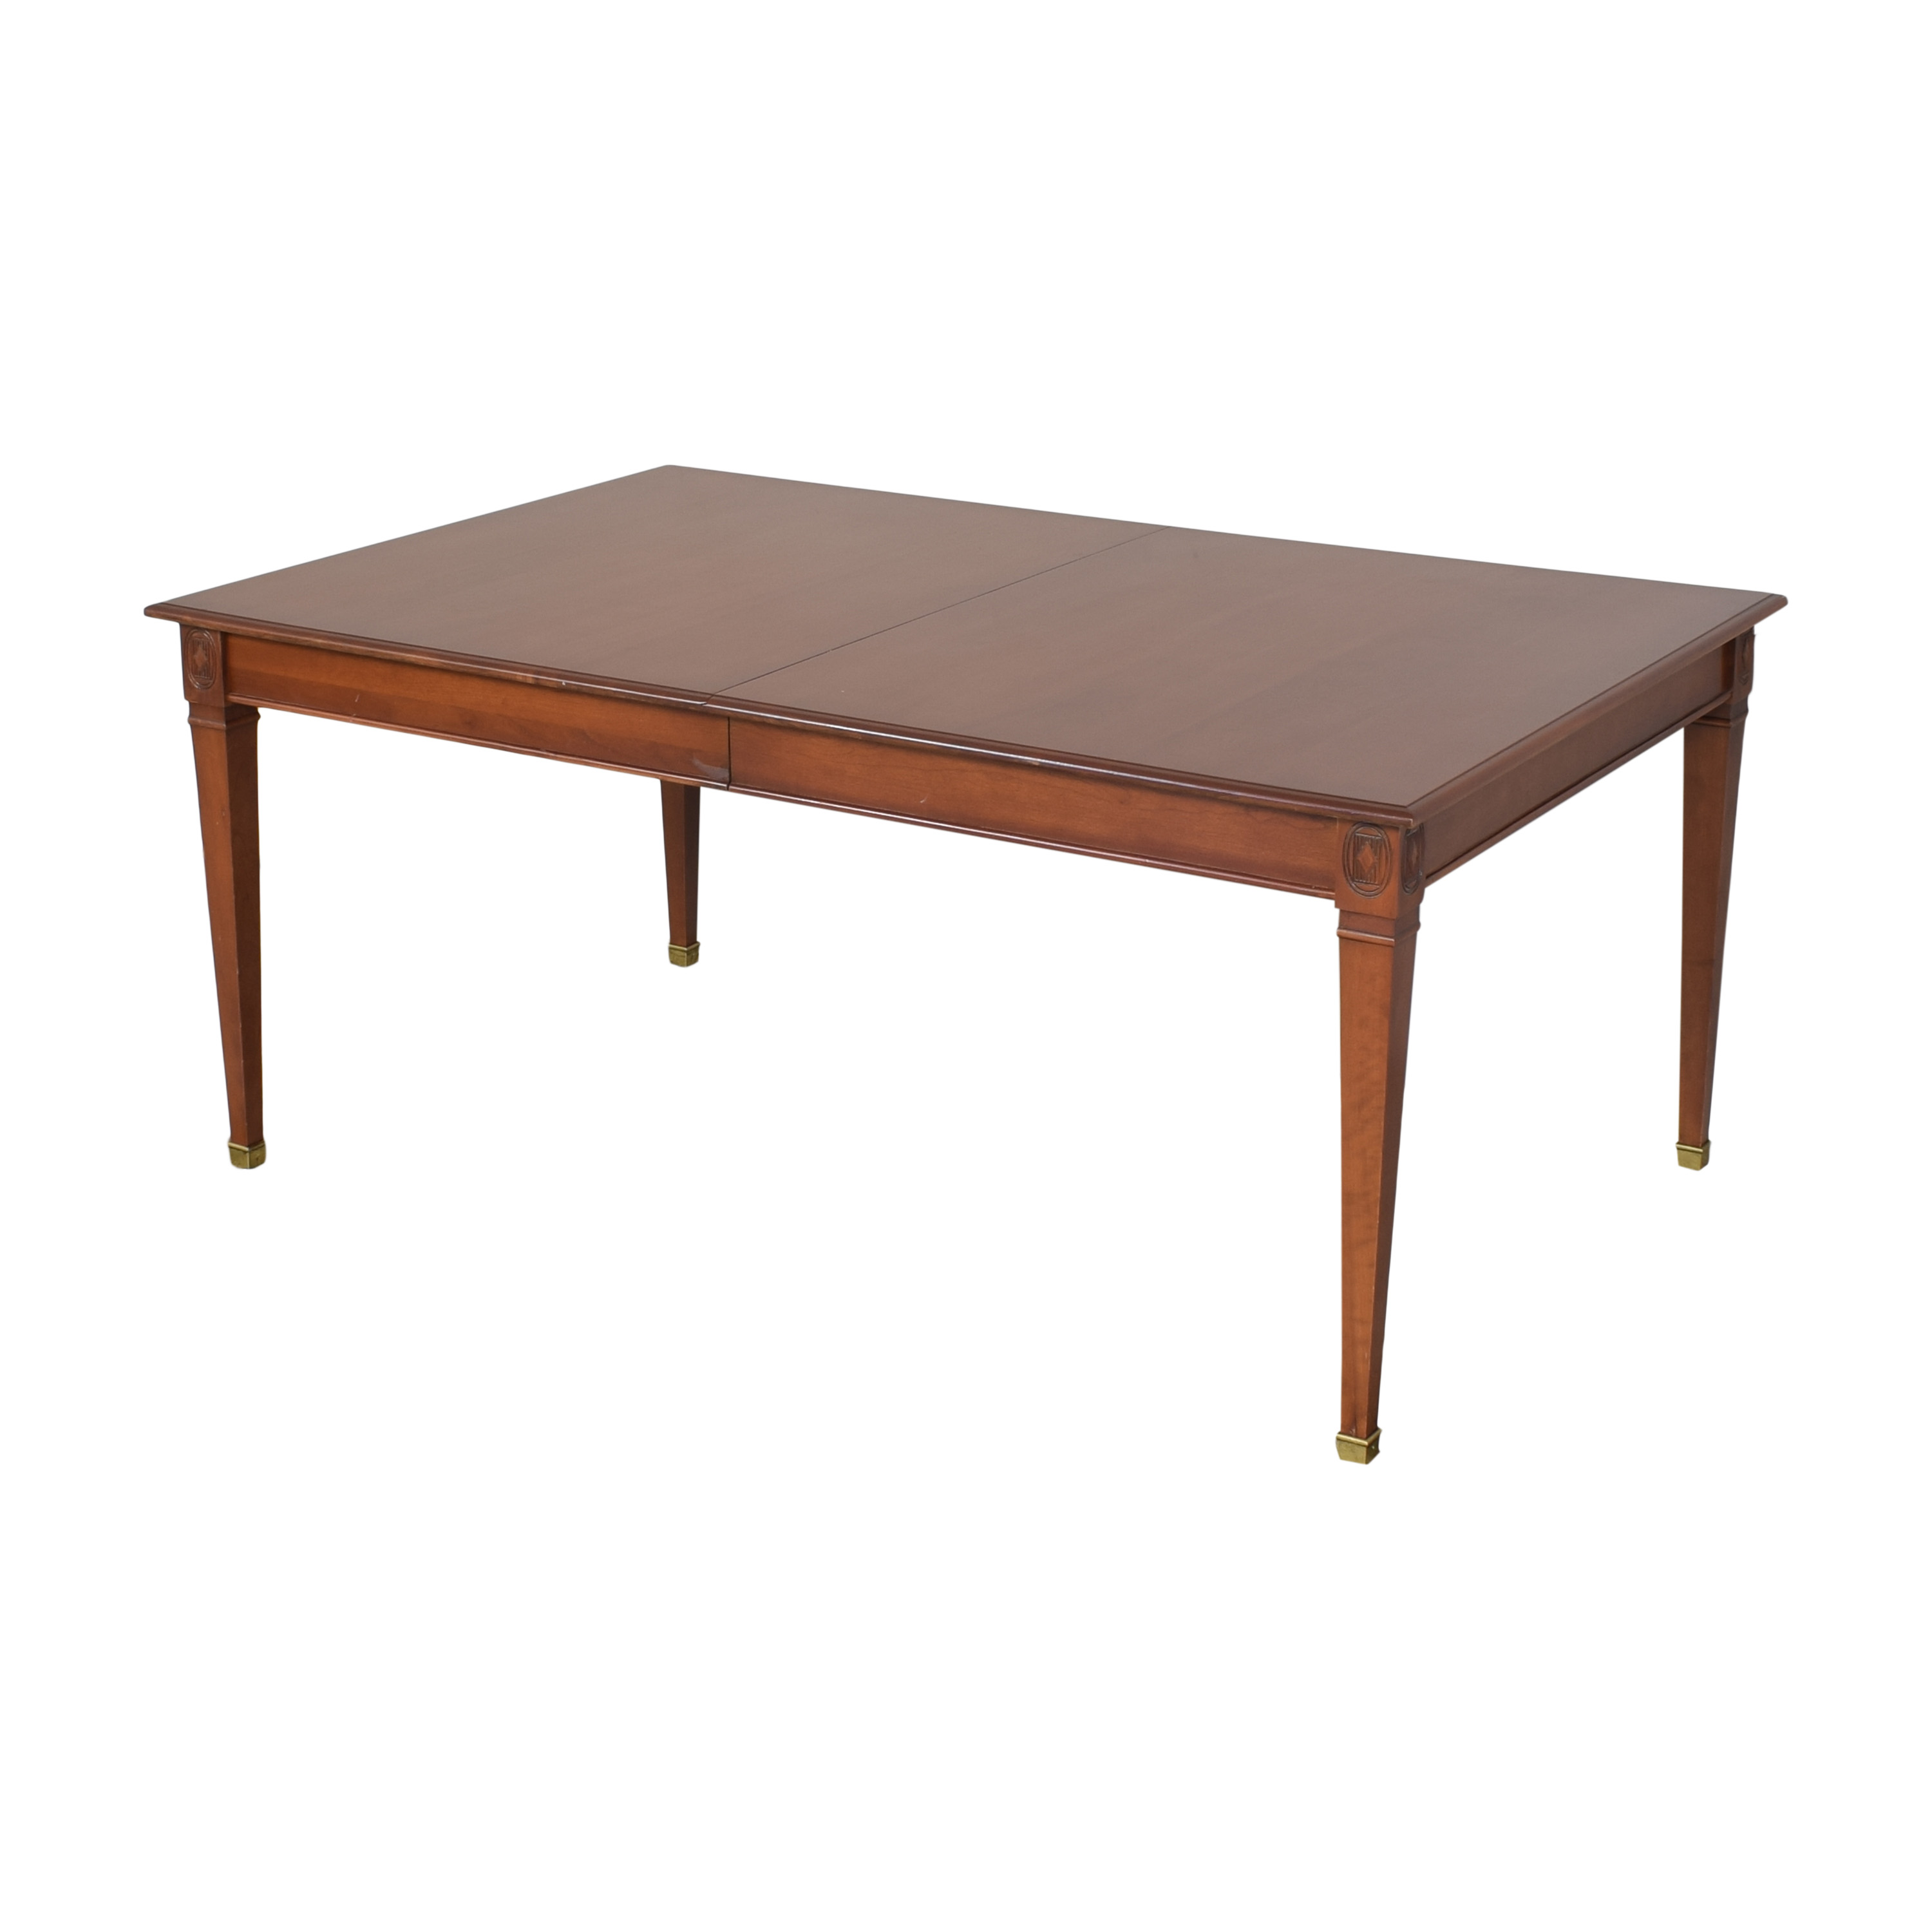 Harden Extension Dining Table / Dinner Tables